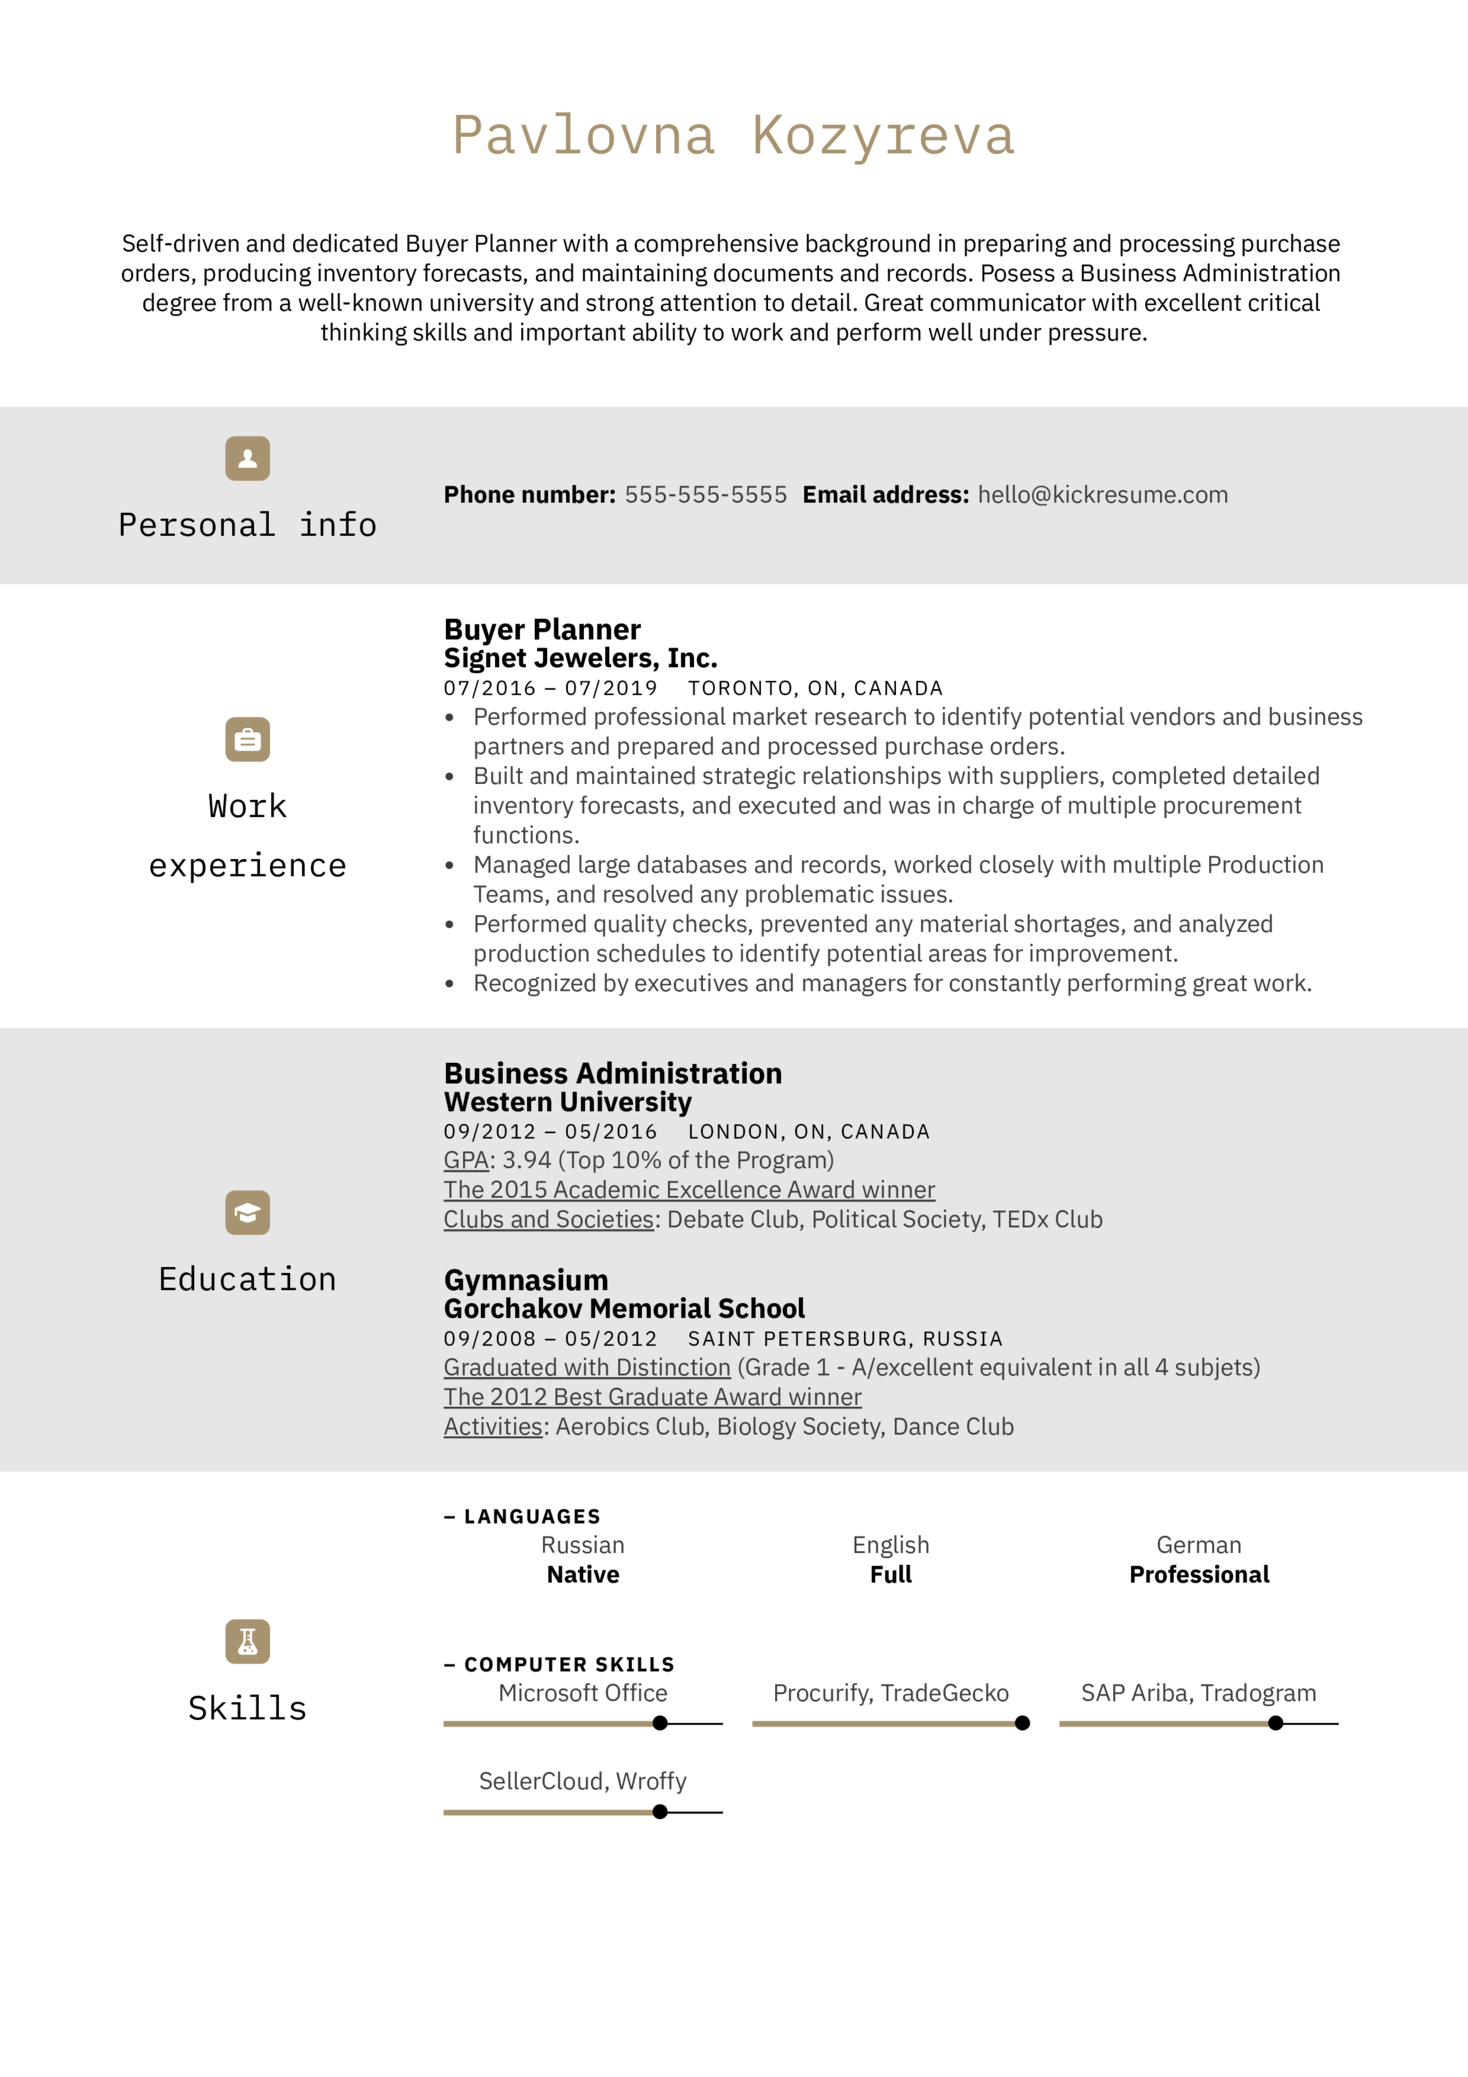 Buyer Planner Resume Example (parte 1)